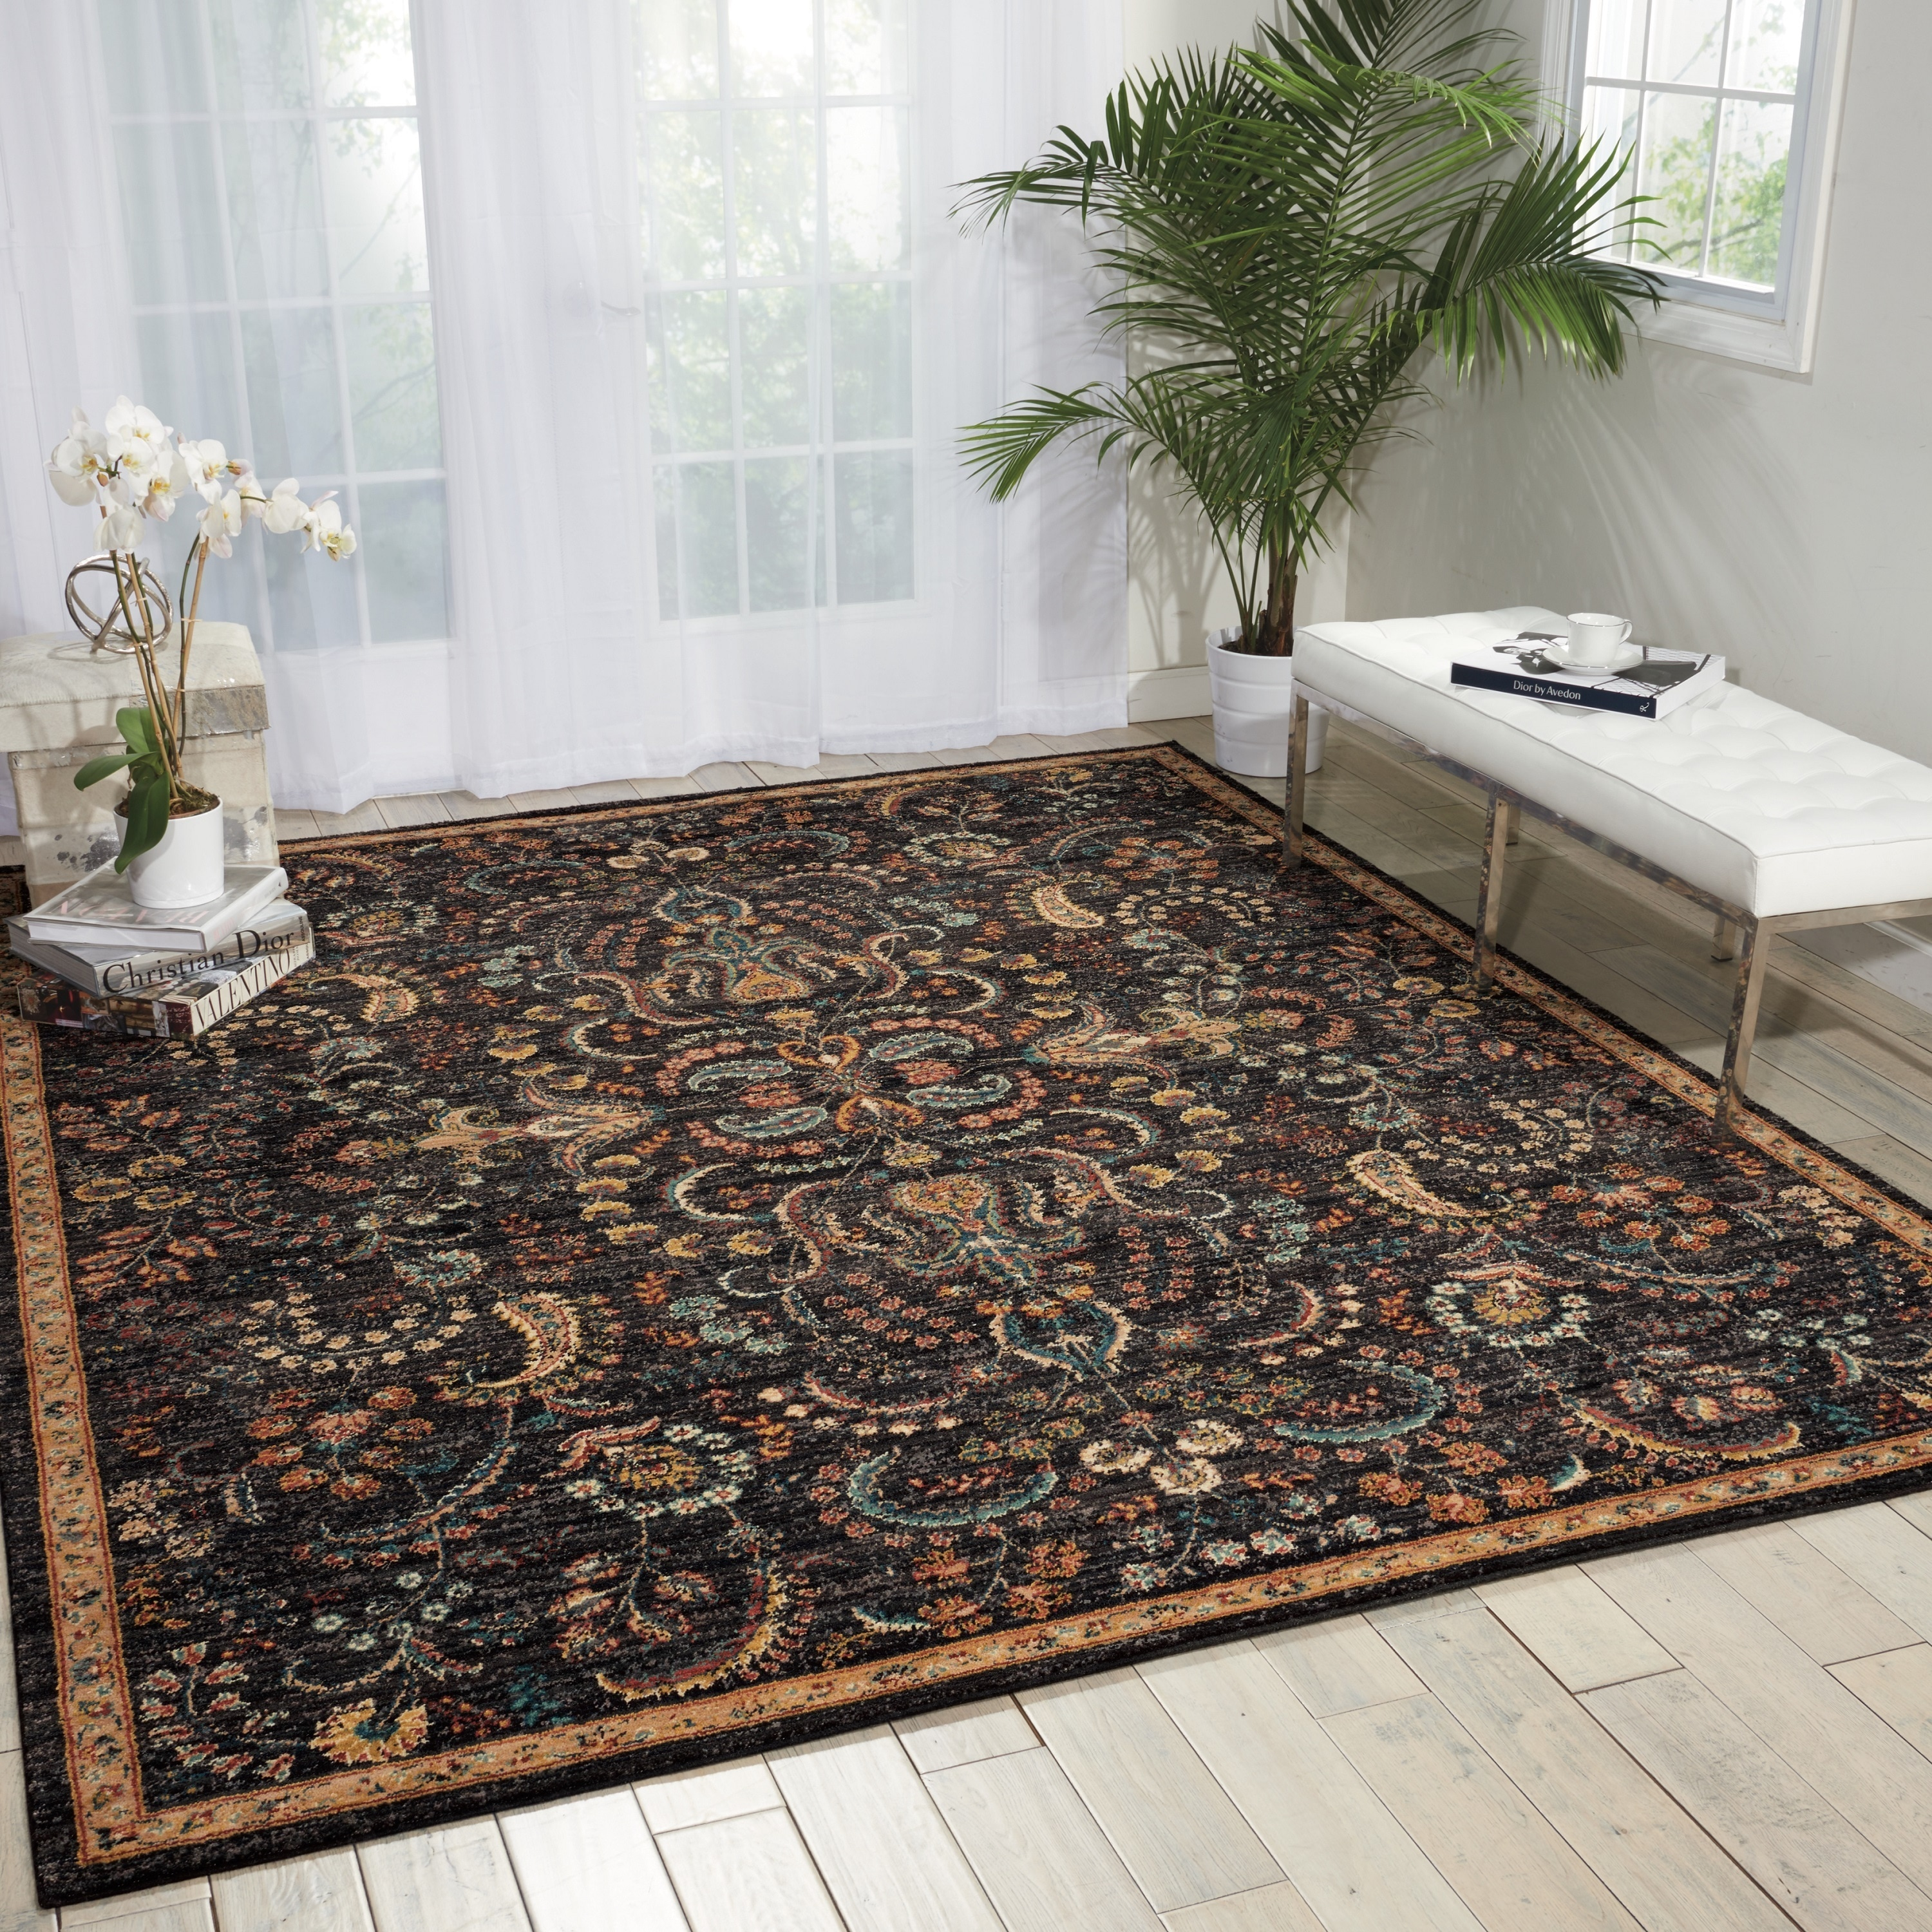 Nourison 2020 Night Fall Area Rug 9 2 X 12 5 Free Shipping Today 19406095